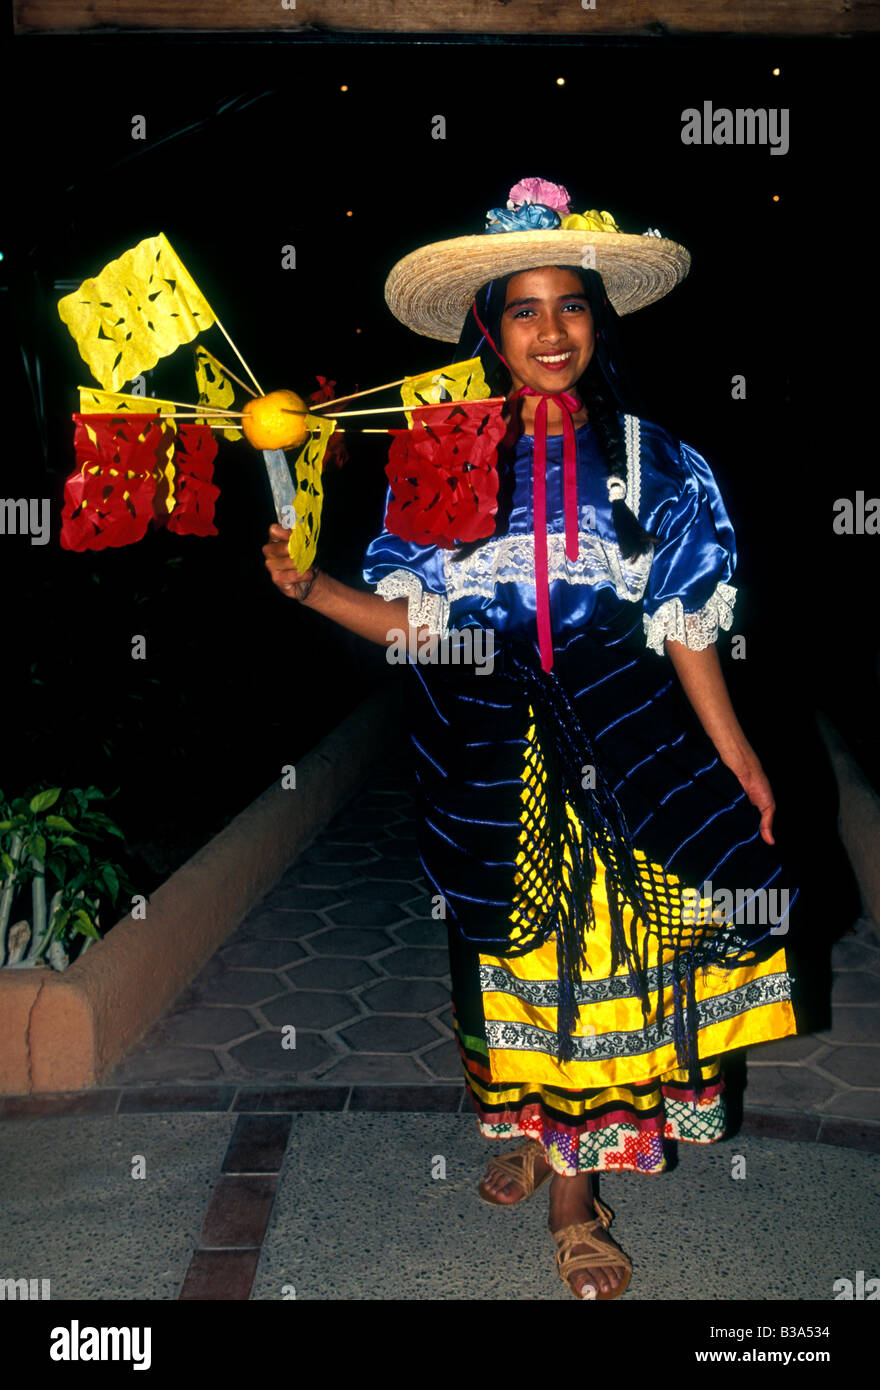 la libertad single hispanic girls People of color performed skilled and unskilled functions that contributed to hispanic afro-peruvian music has its roots in peru such as la libertad.